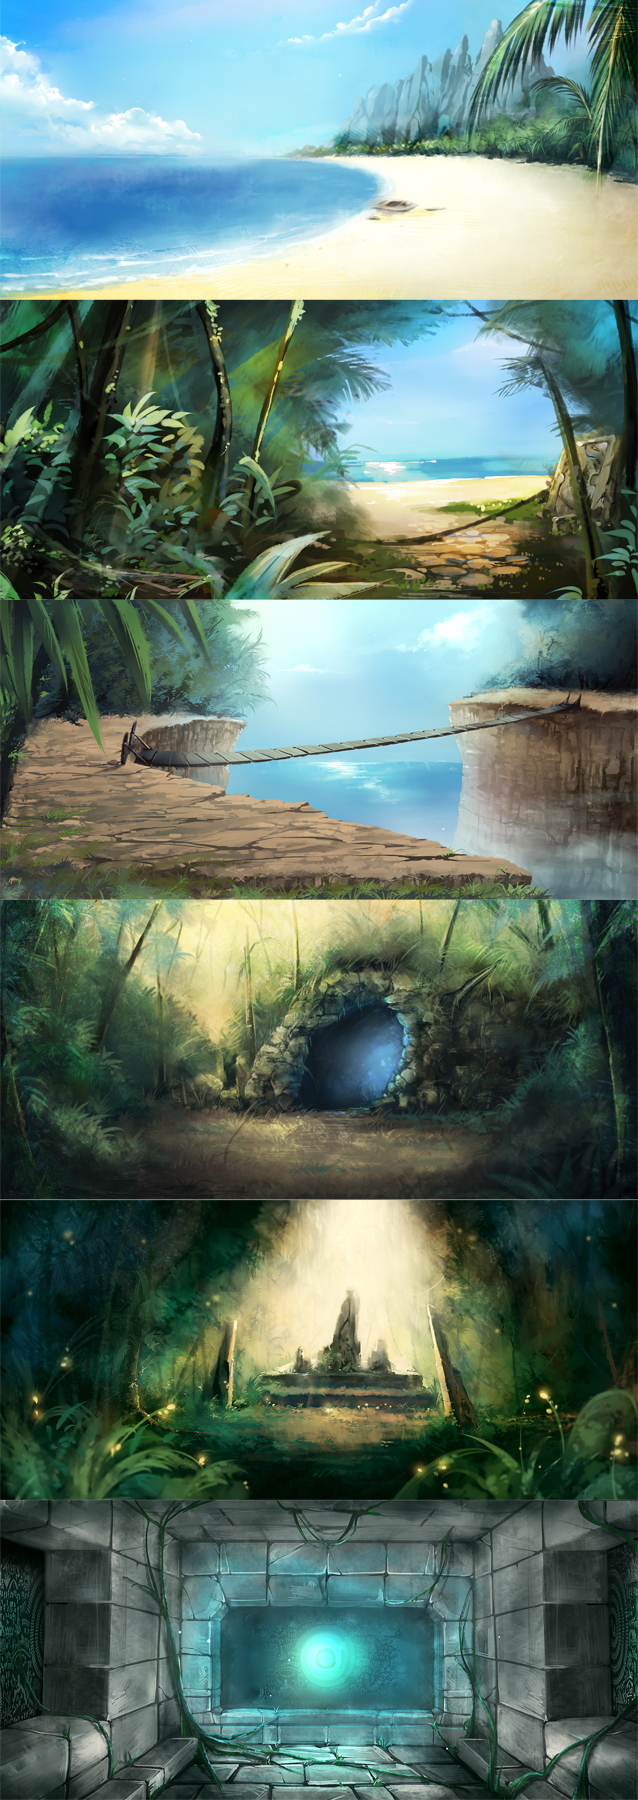 Tags: Anime, Tooaya, Log Pose, Boat, Orb, Shore, Compass, Cave, Dark Colors, Cliff, Stone Wall, Original